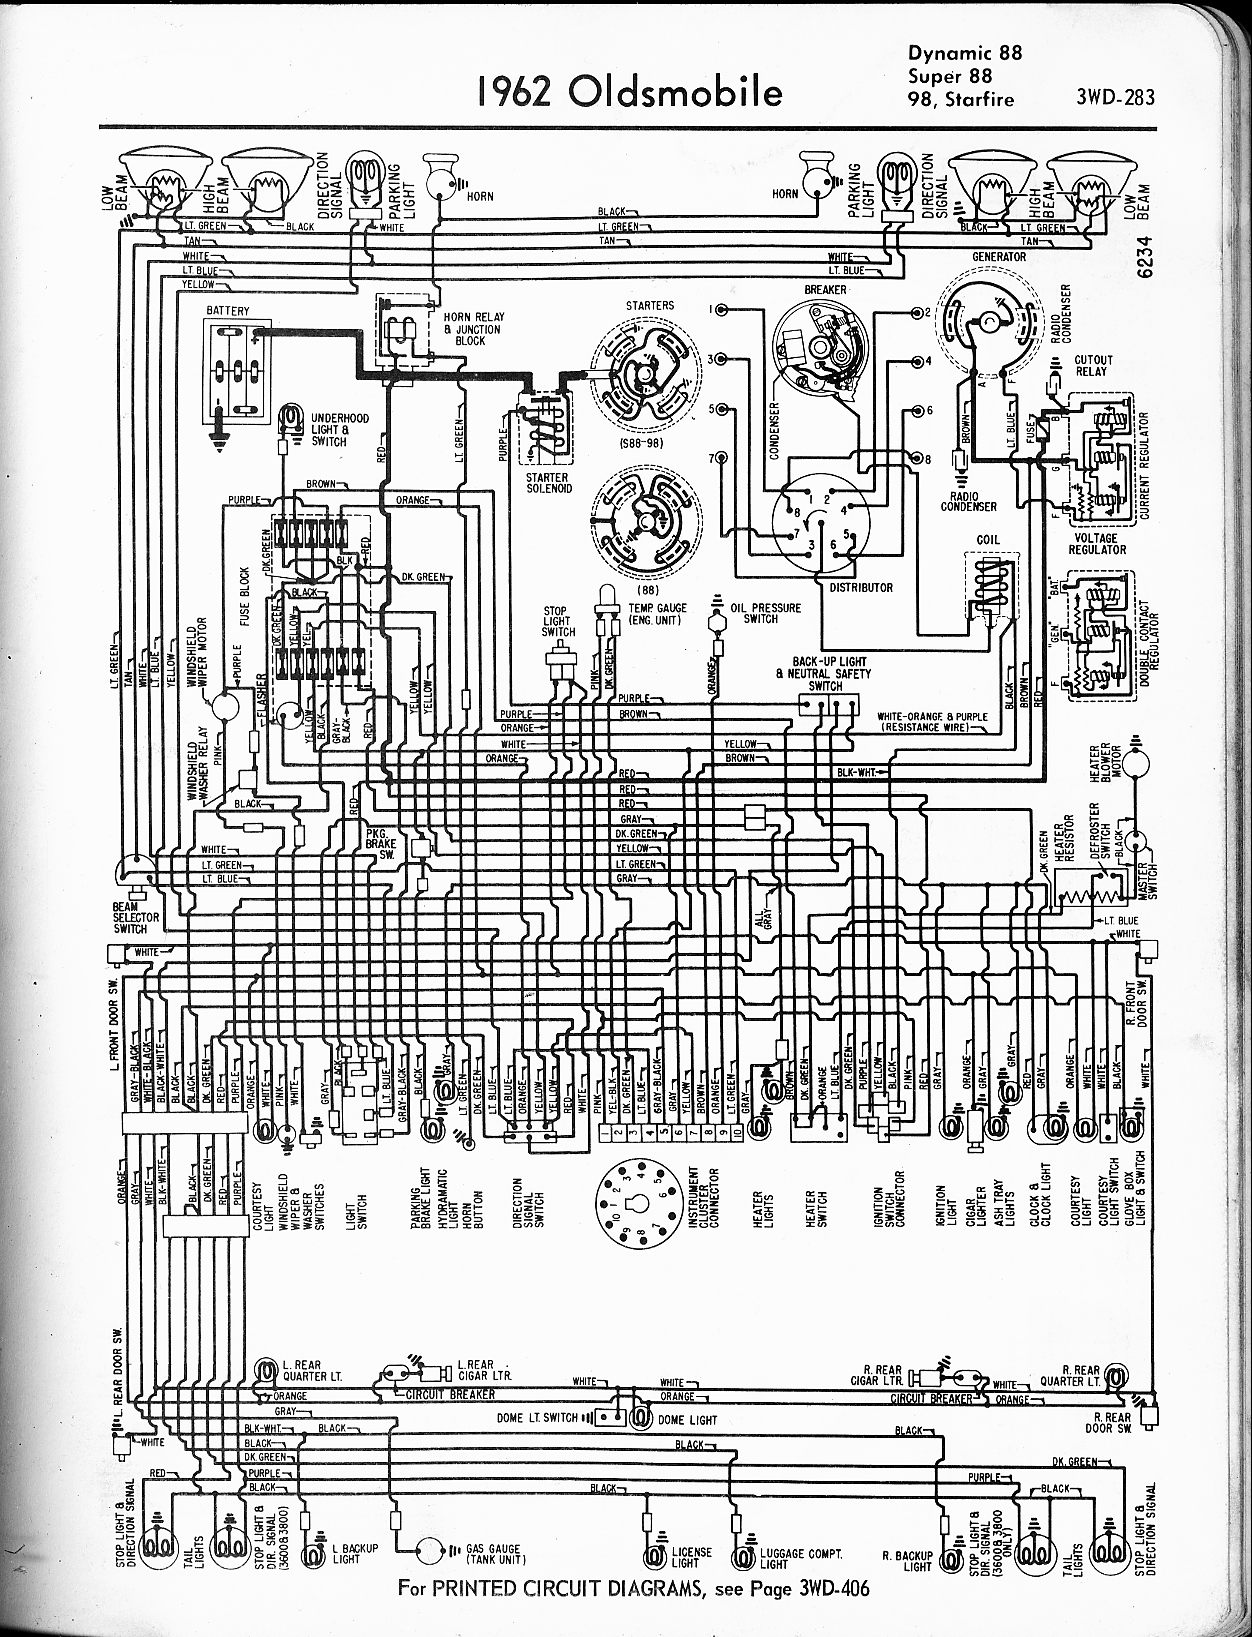 oldsmobile wiring diagrams the old car manual project rh oldcarmanualproject com 1968 Oldsmobile 1963 Oldsmobile